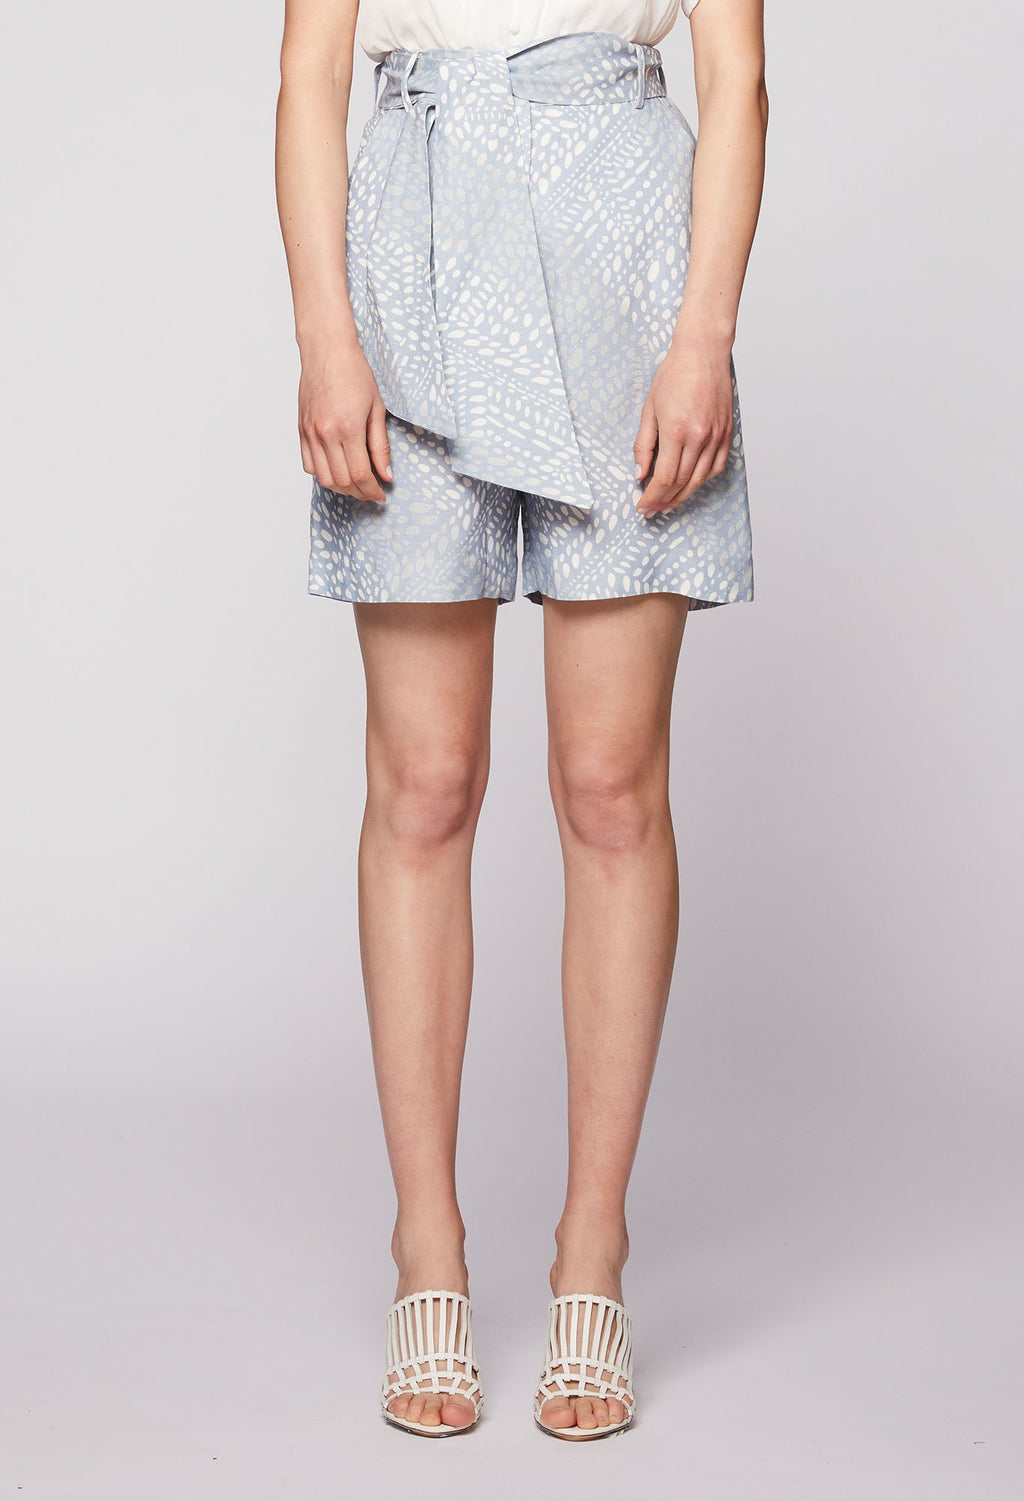 ONCE WAS - POLLEN LINEN BLEND SHORTS